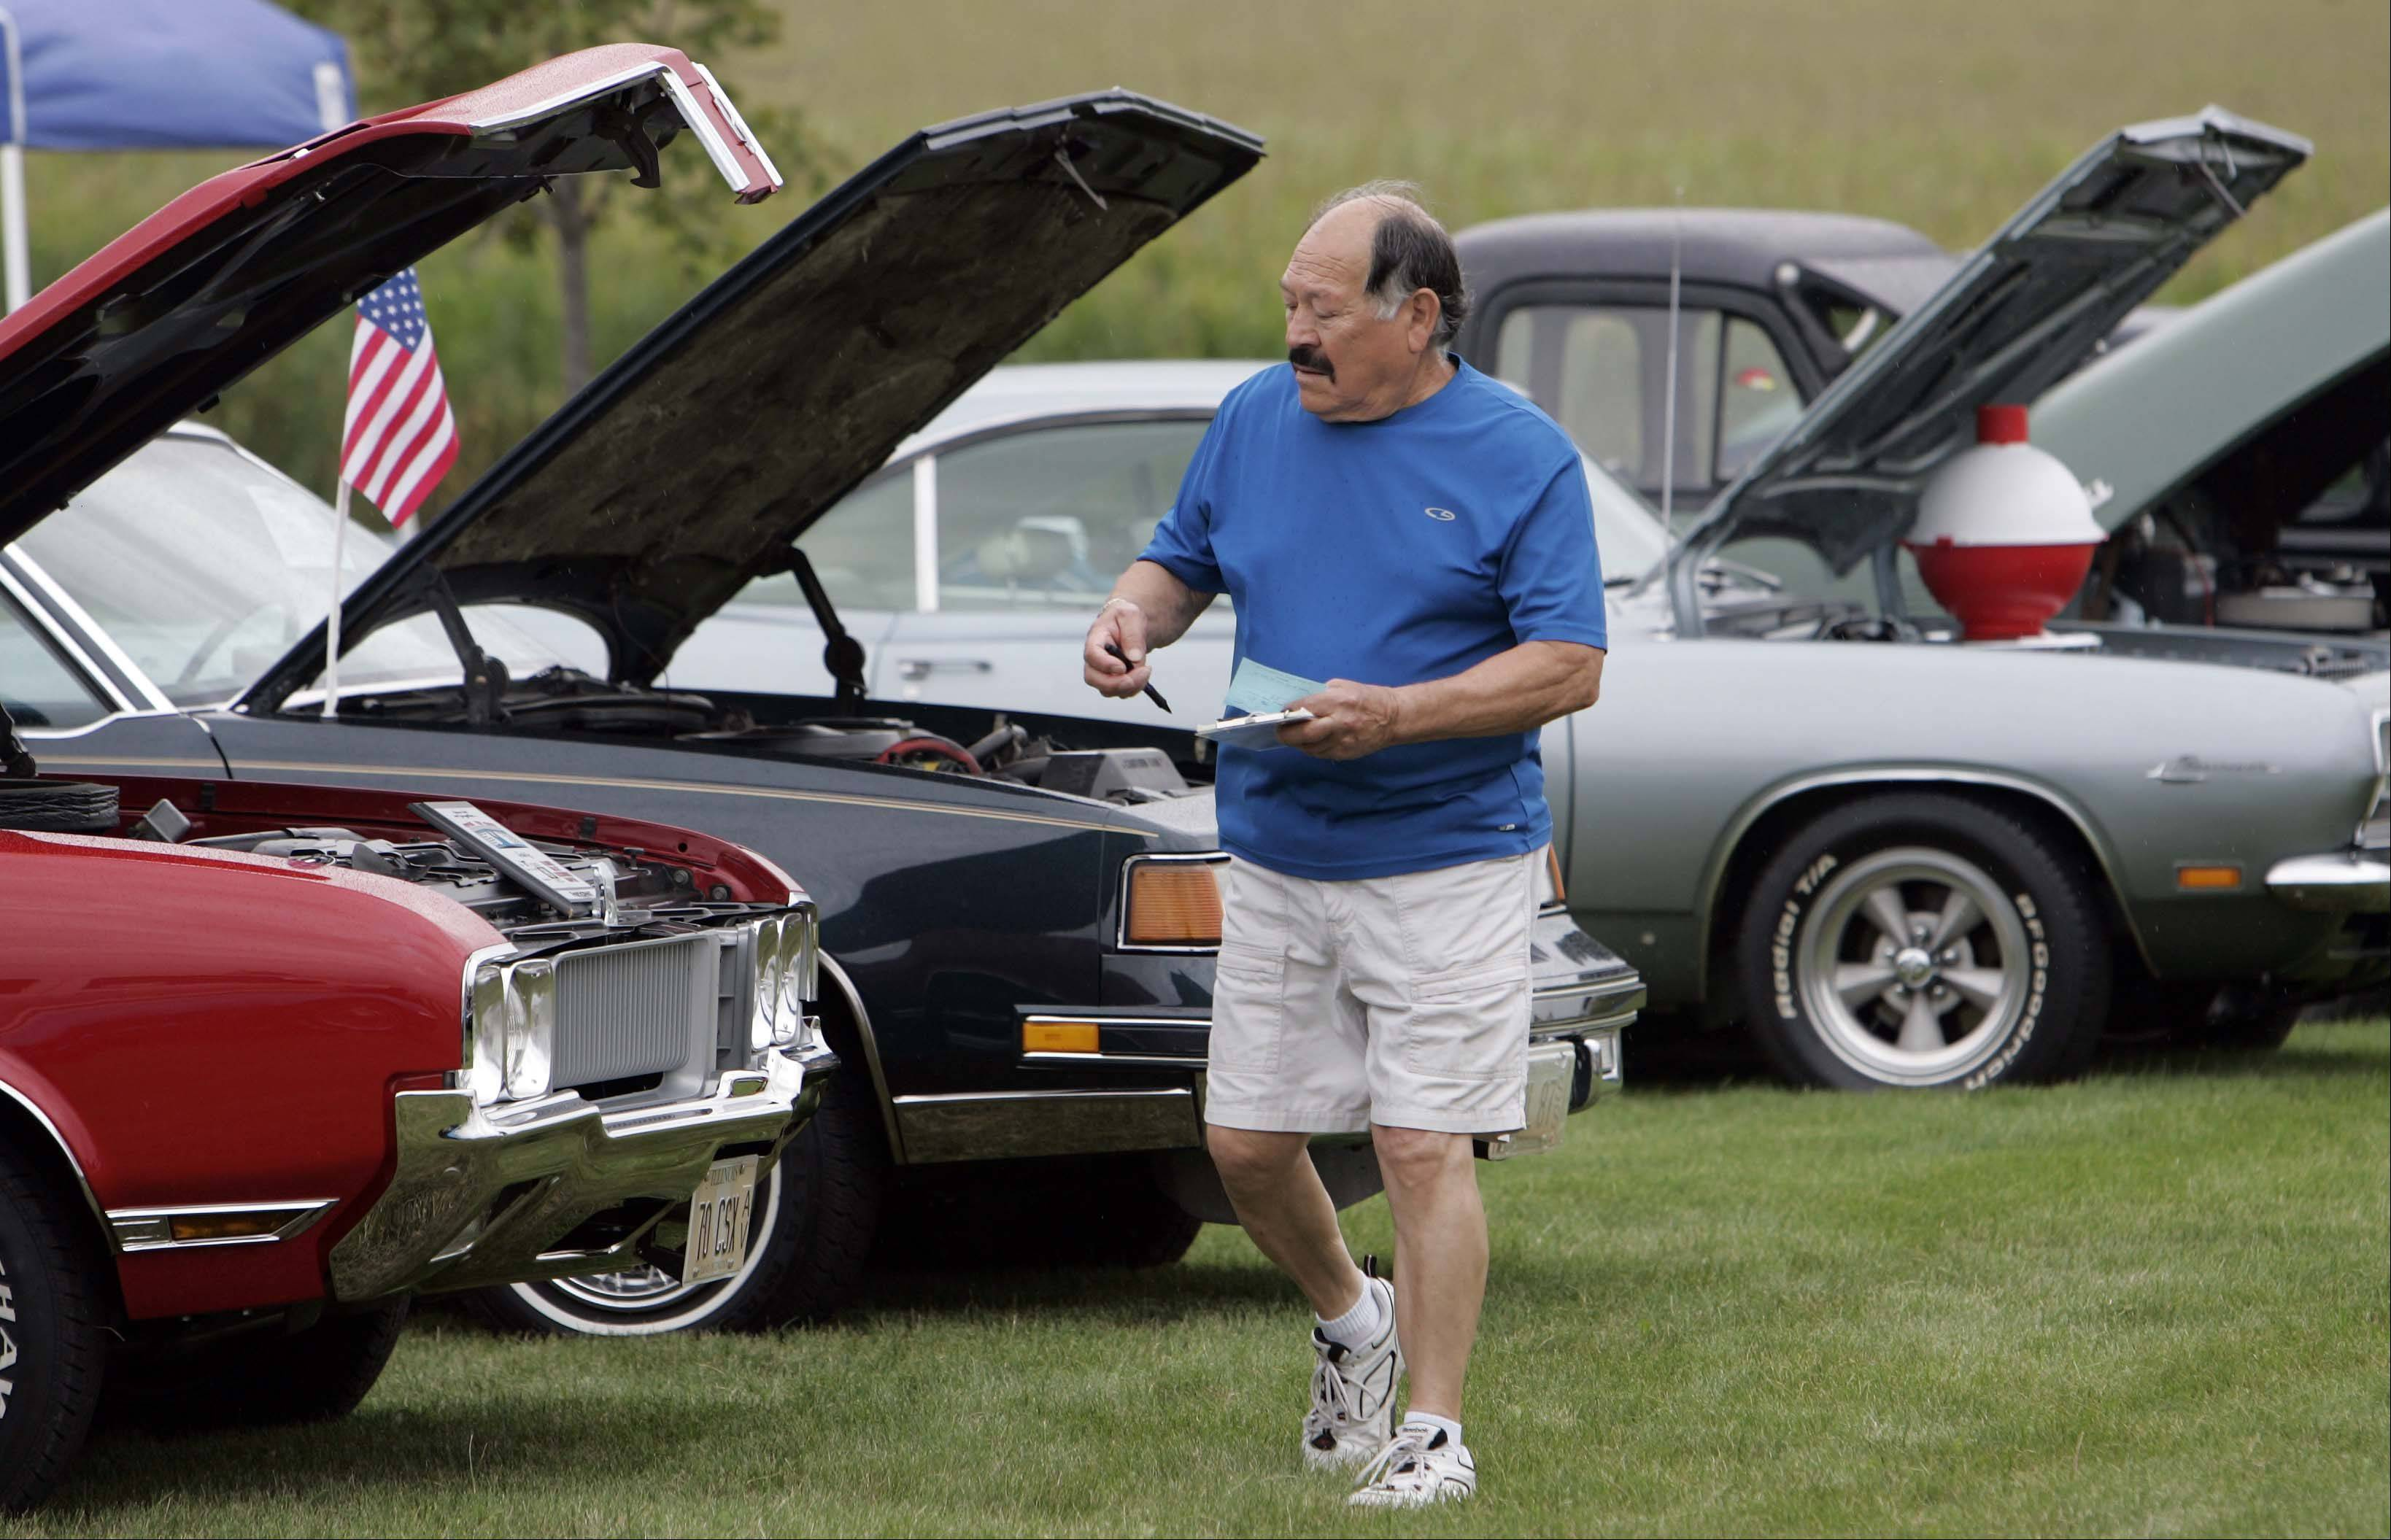 Lee Gomez of St. Charles gets a look at some of the cars during Kane County Sheriff Pat Perez's sixth annual charity car and motorcycle show last year in Elburn. Gomez was showing his own six-cylinder 1965 Chevrolet Impala.